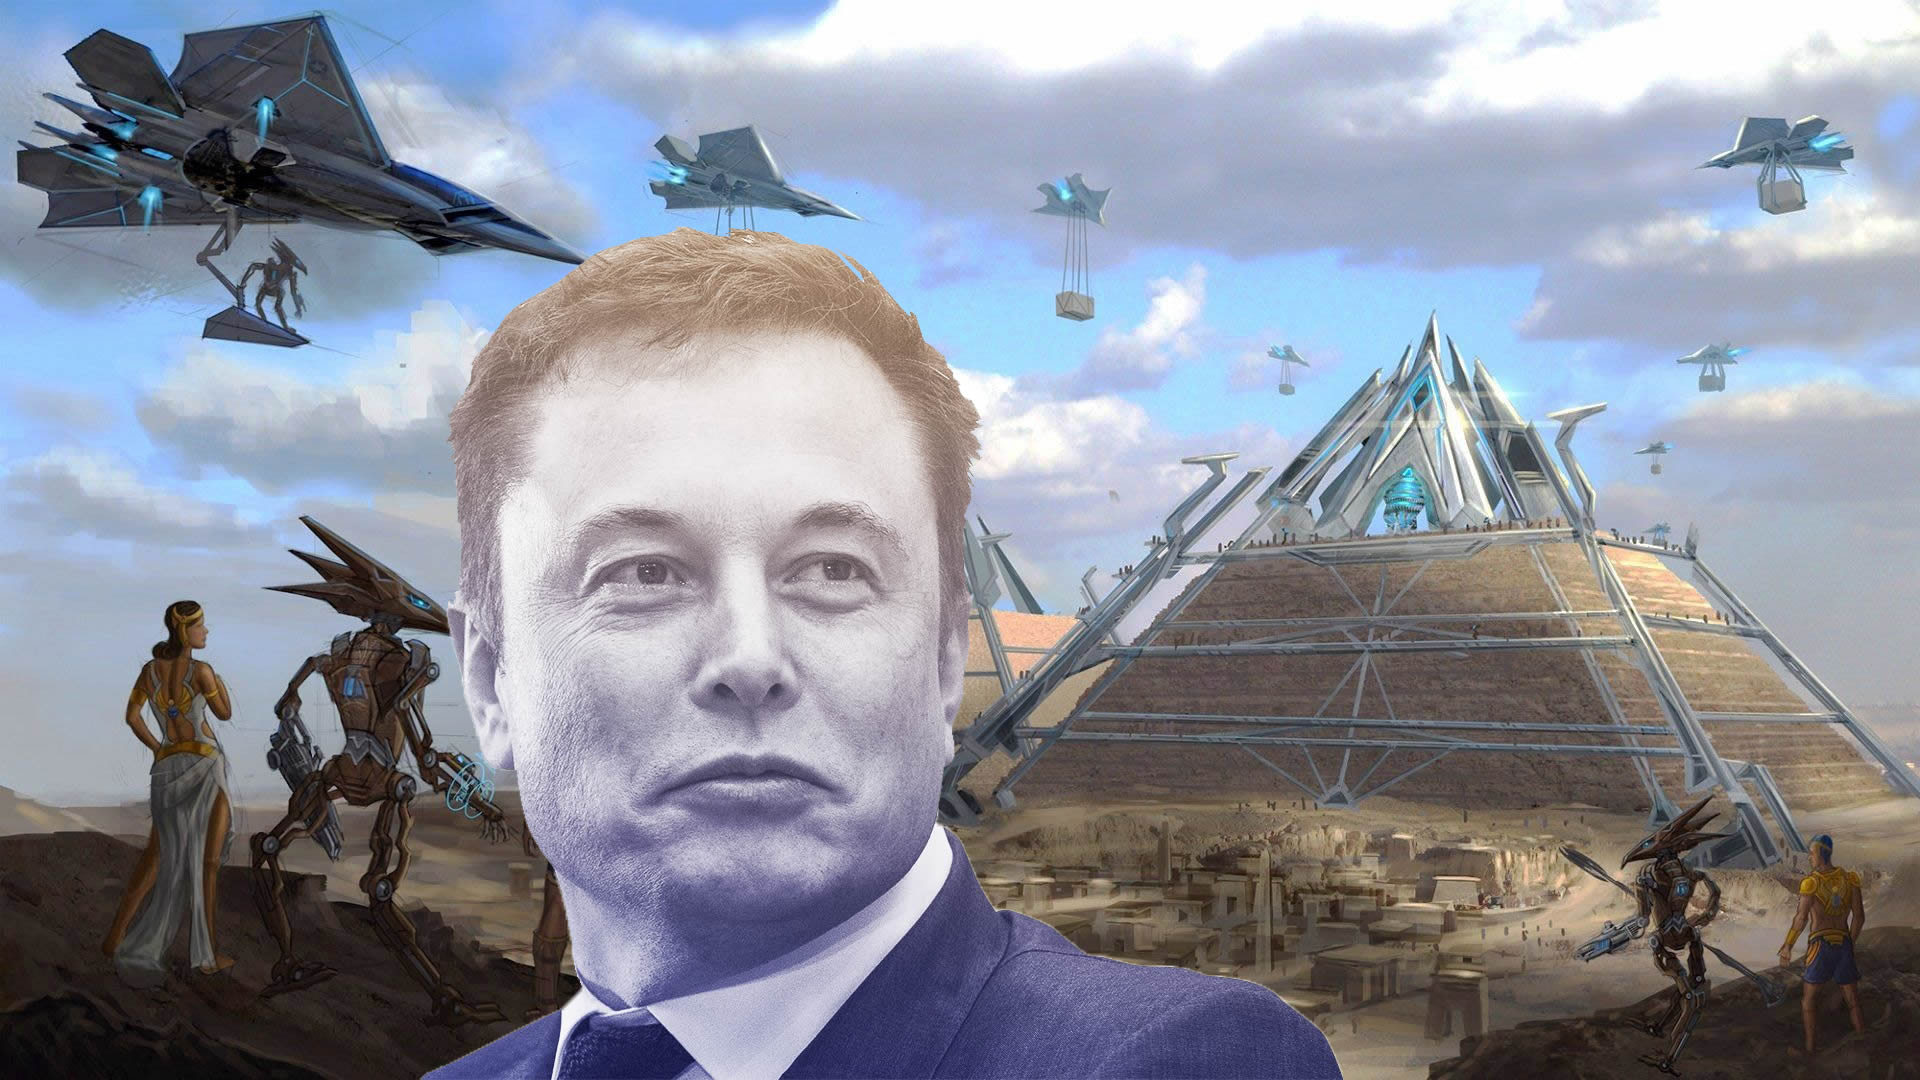 Elon Musk tweets that aliens built the pyramids 34